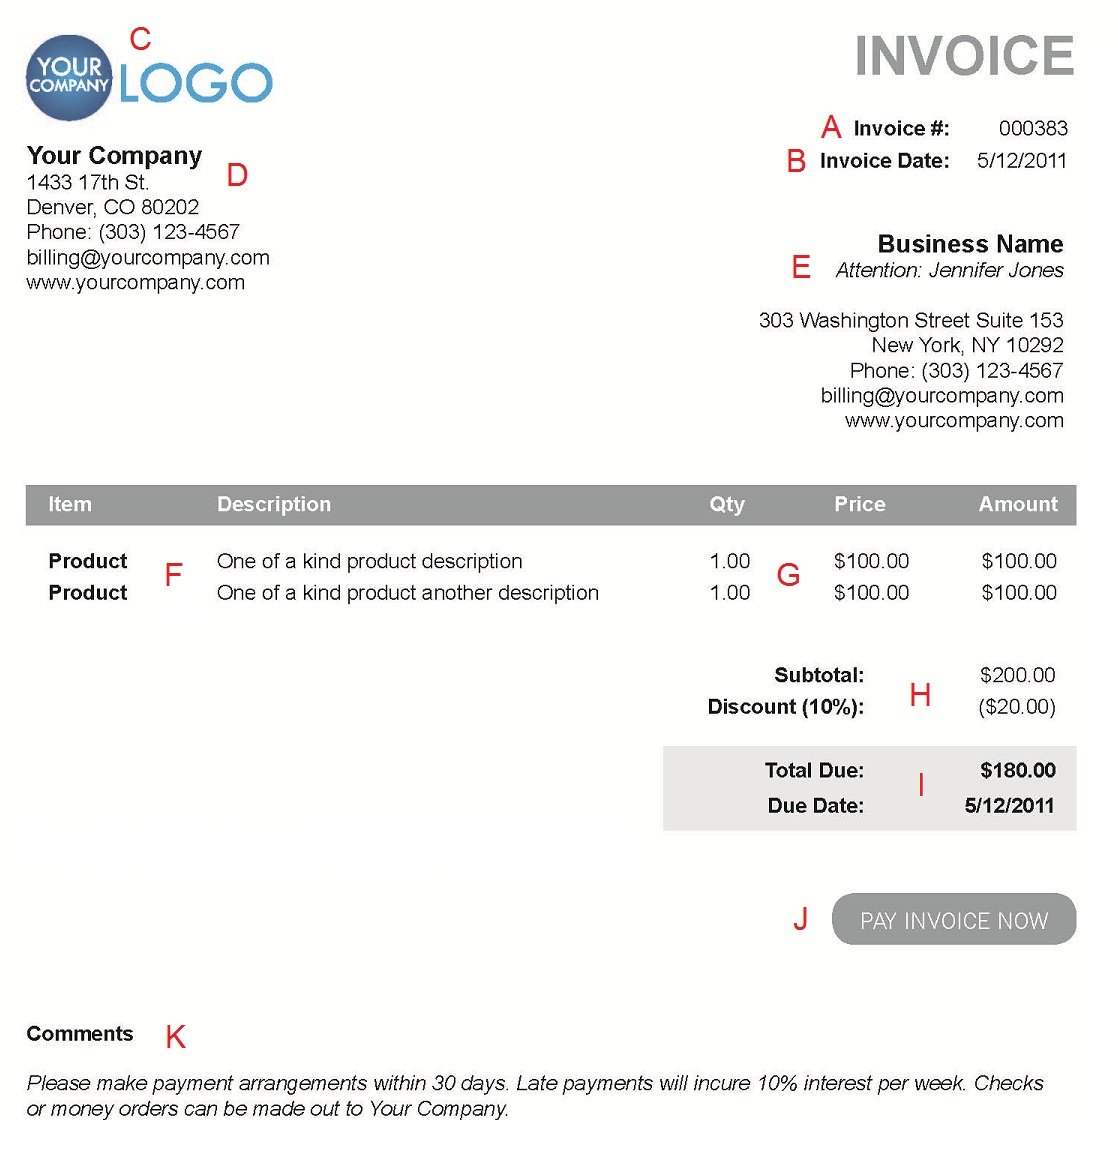 Occupyhistoryus  Marvellous The  Different Sections Of An Electronic Payment Invoice With Lovely A  With Beauteous Honda Pilot Invoice Price Also Hvac Service Invoices In Addition Google Invoice Templates And Dealer Invoice Price Ford As Well As How To Import Invoices Into Quickbooks Additionally Invoice Creator App From Paysimplecom With Occupyhistoryus  Lovely The  Different Sections Of An Electronic Payment Invoice With Beauteous A  And Marvellous Honda Pilot Invoice Price Also Hvac Service Invoices In Addition Google Invoice Templates From Paysimplecom